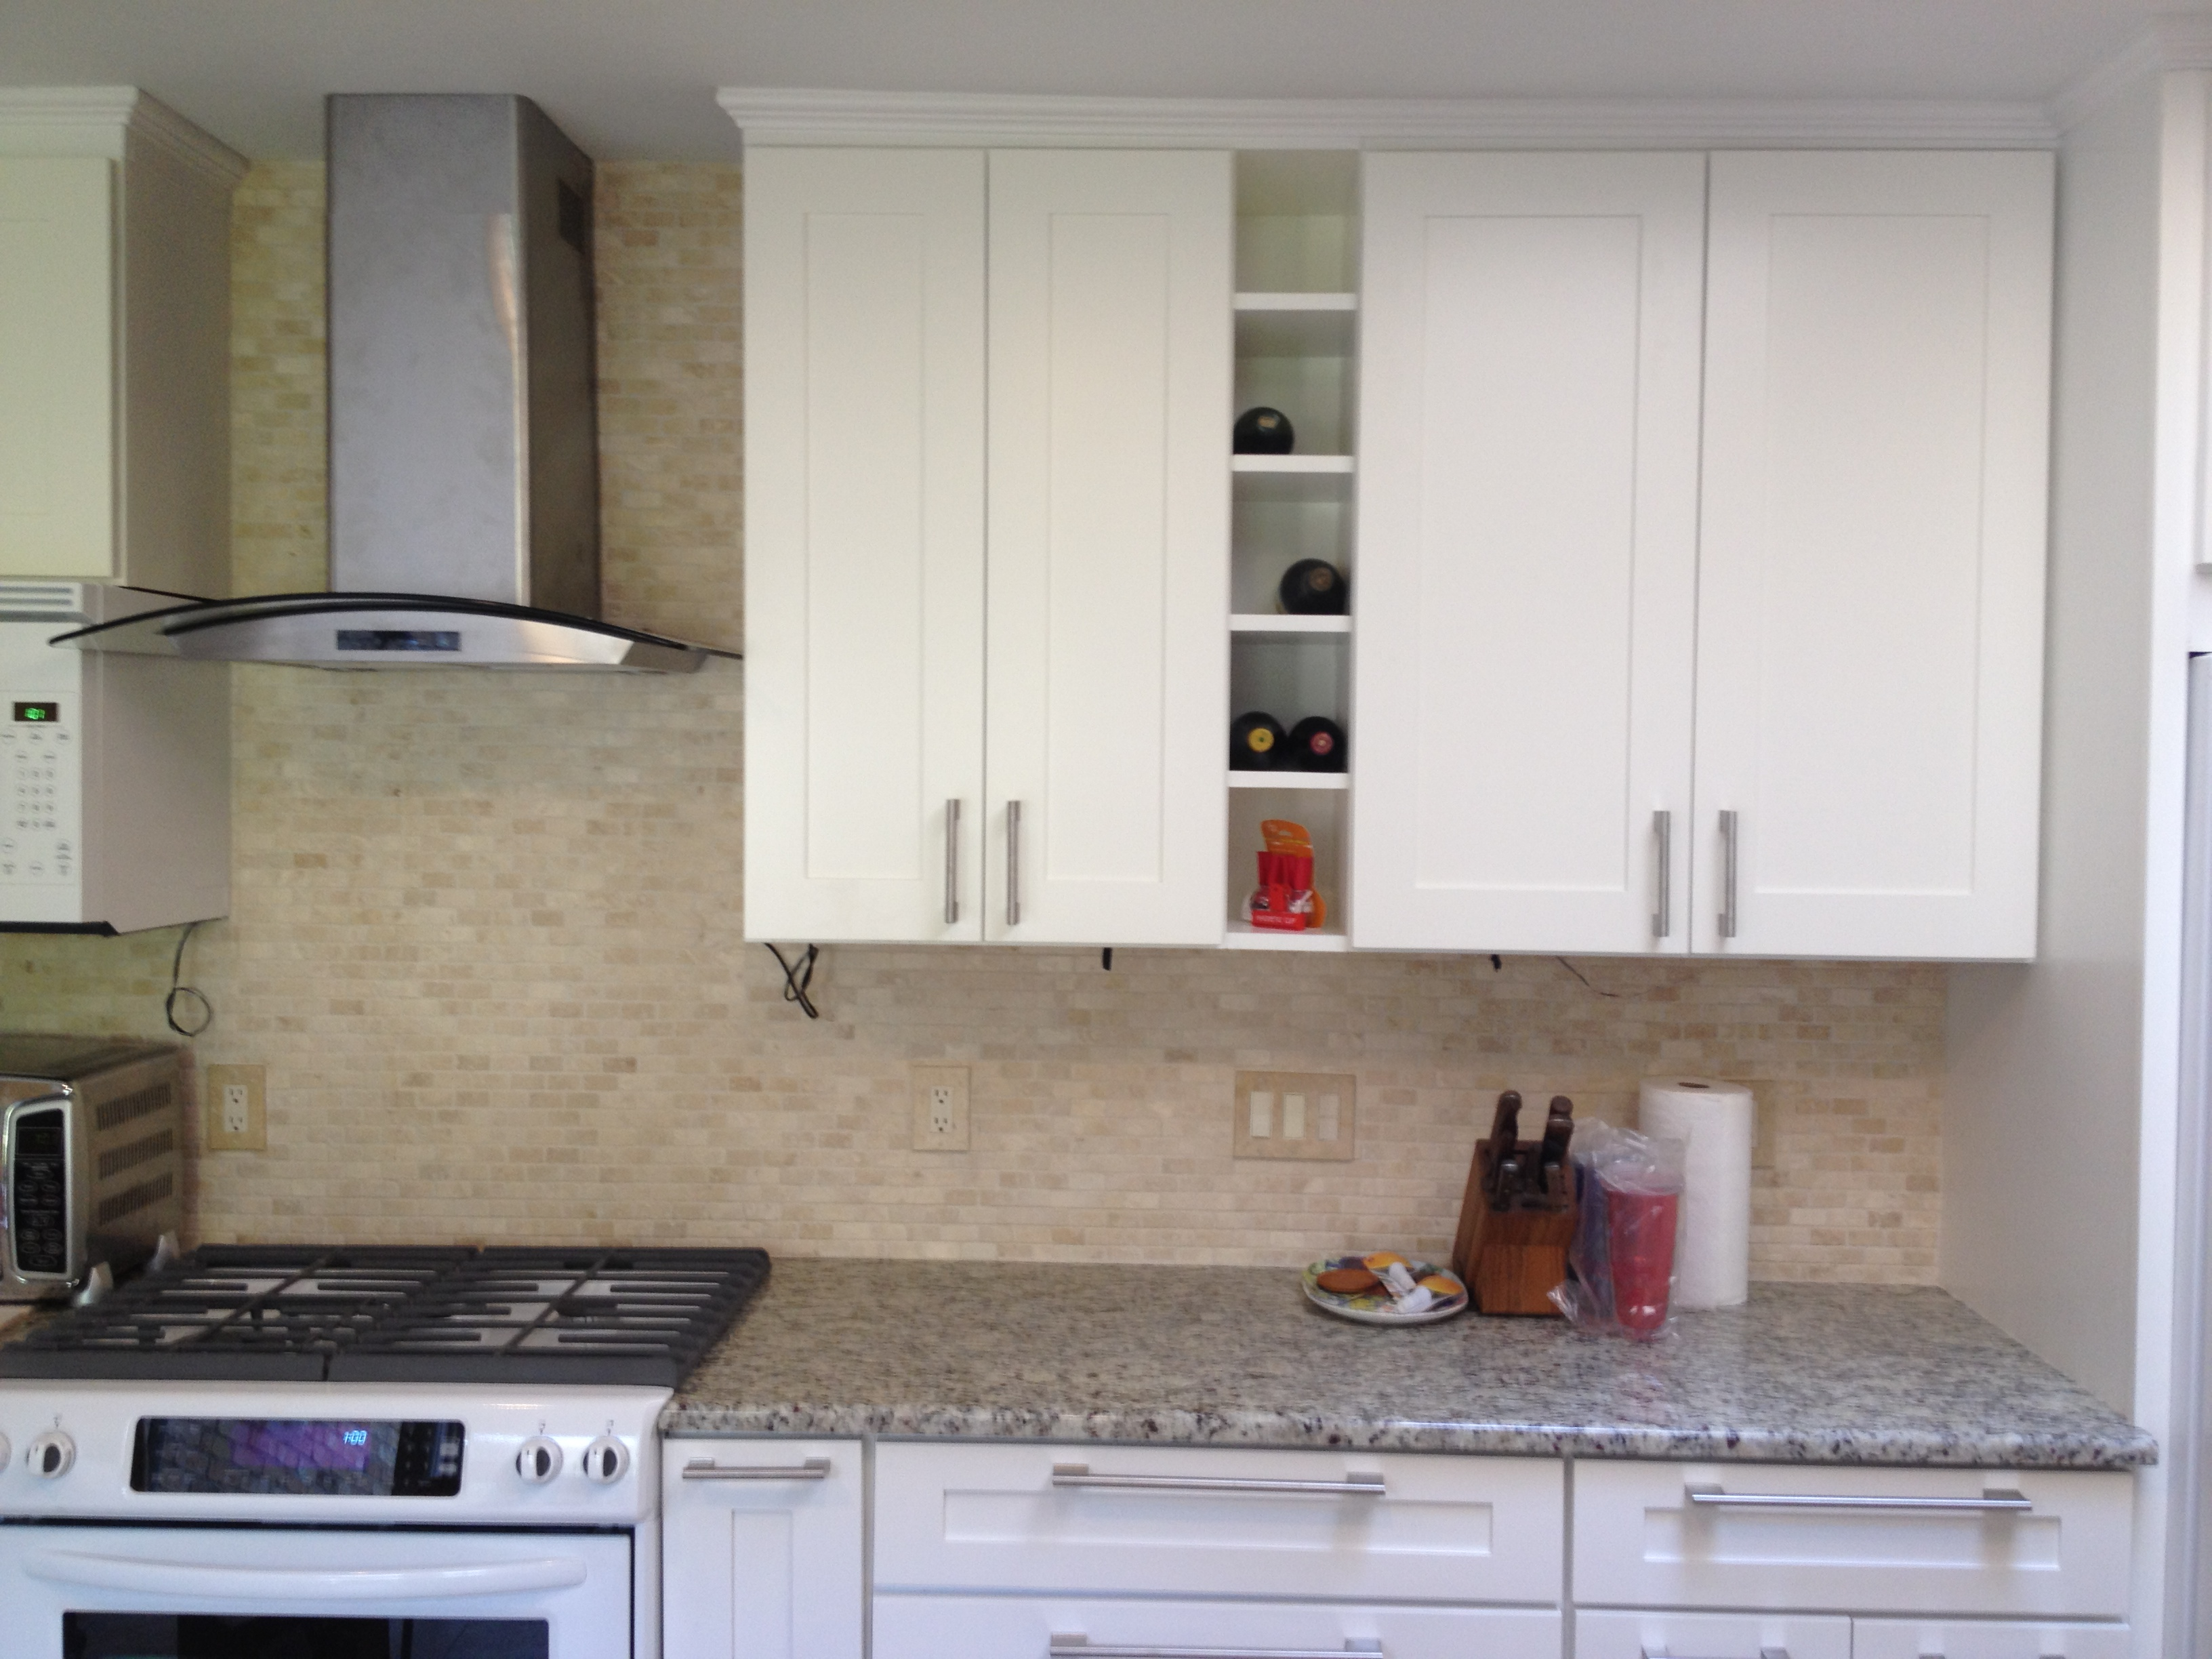 doorlemma shaker style vs raised panel shaker style kitchen cabinets Or maybe you are leaning towards contemporary Thinking farmhouse The shaker style cabinet door is recessed in the middle with